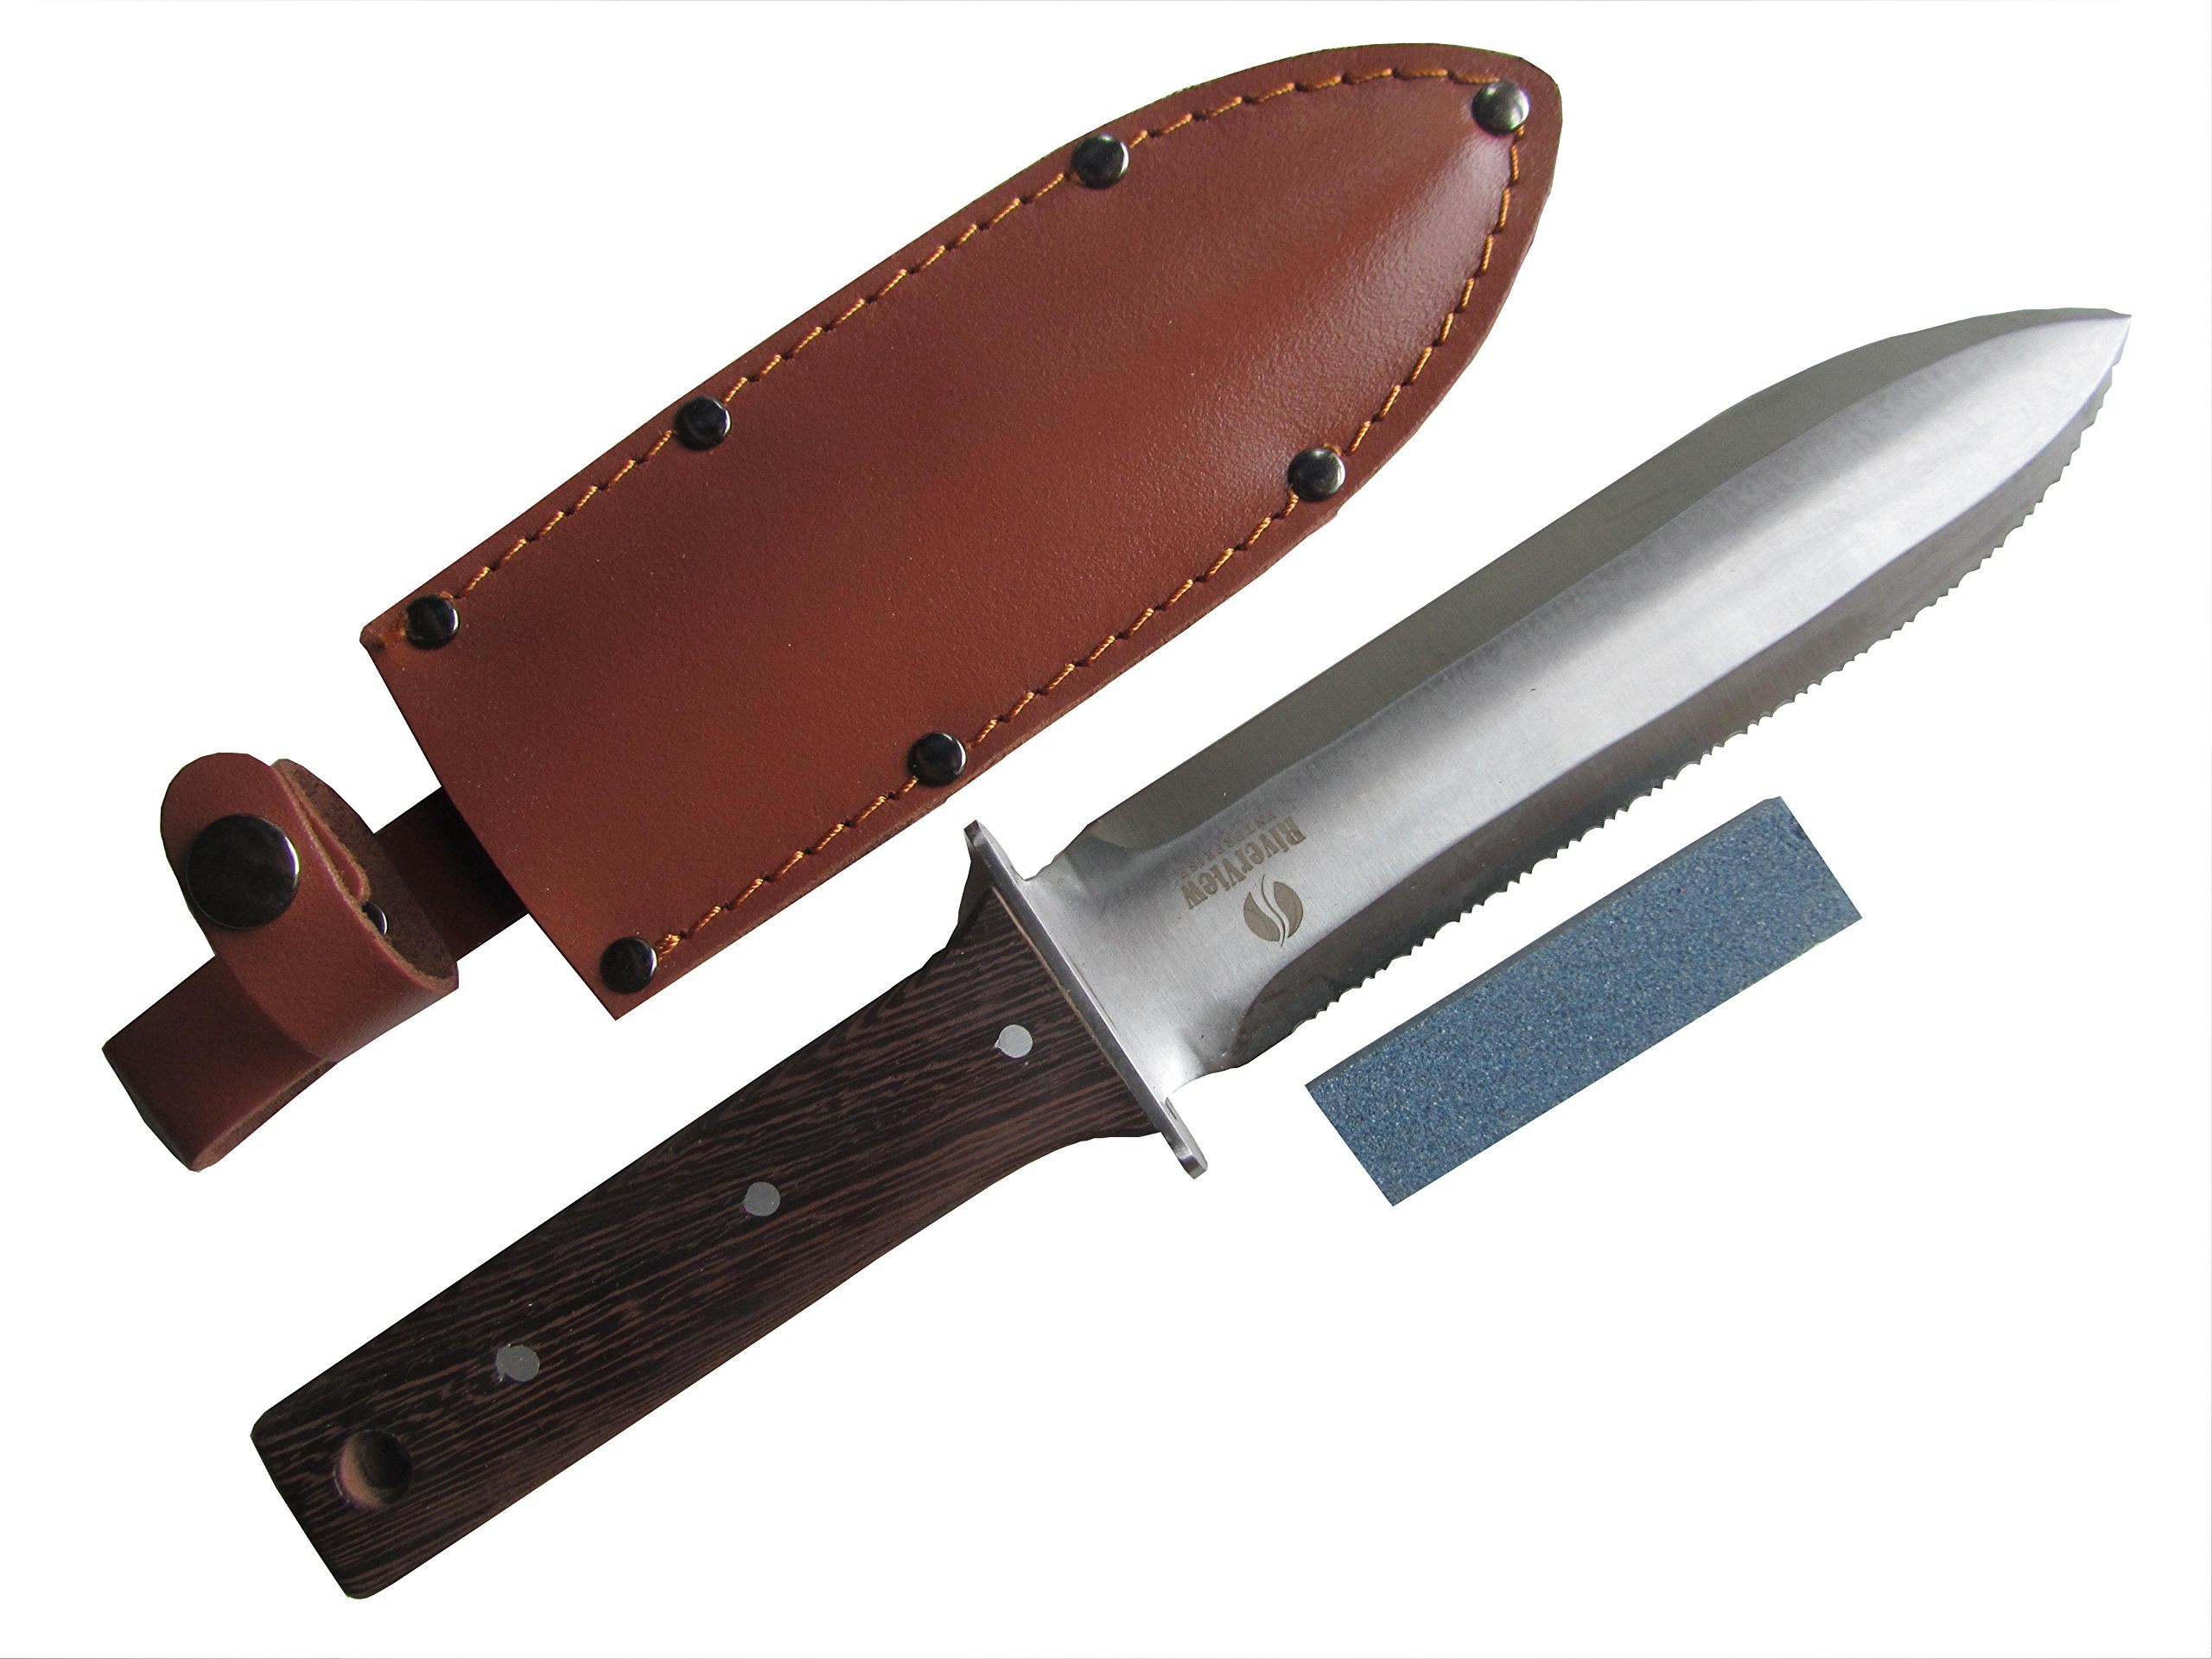 Hori Hori Multipurpose Japanese Garden and Camping Knife/Tool – (A Gardeners Dream) Thick Sharp Stainless Steel Blade - Heavy Riveted Leather Sheath - Whetstone Sharpening Stone